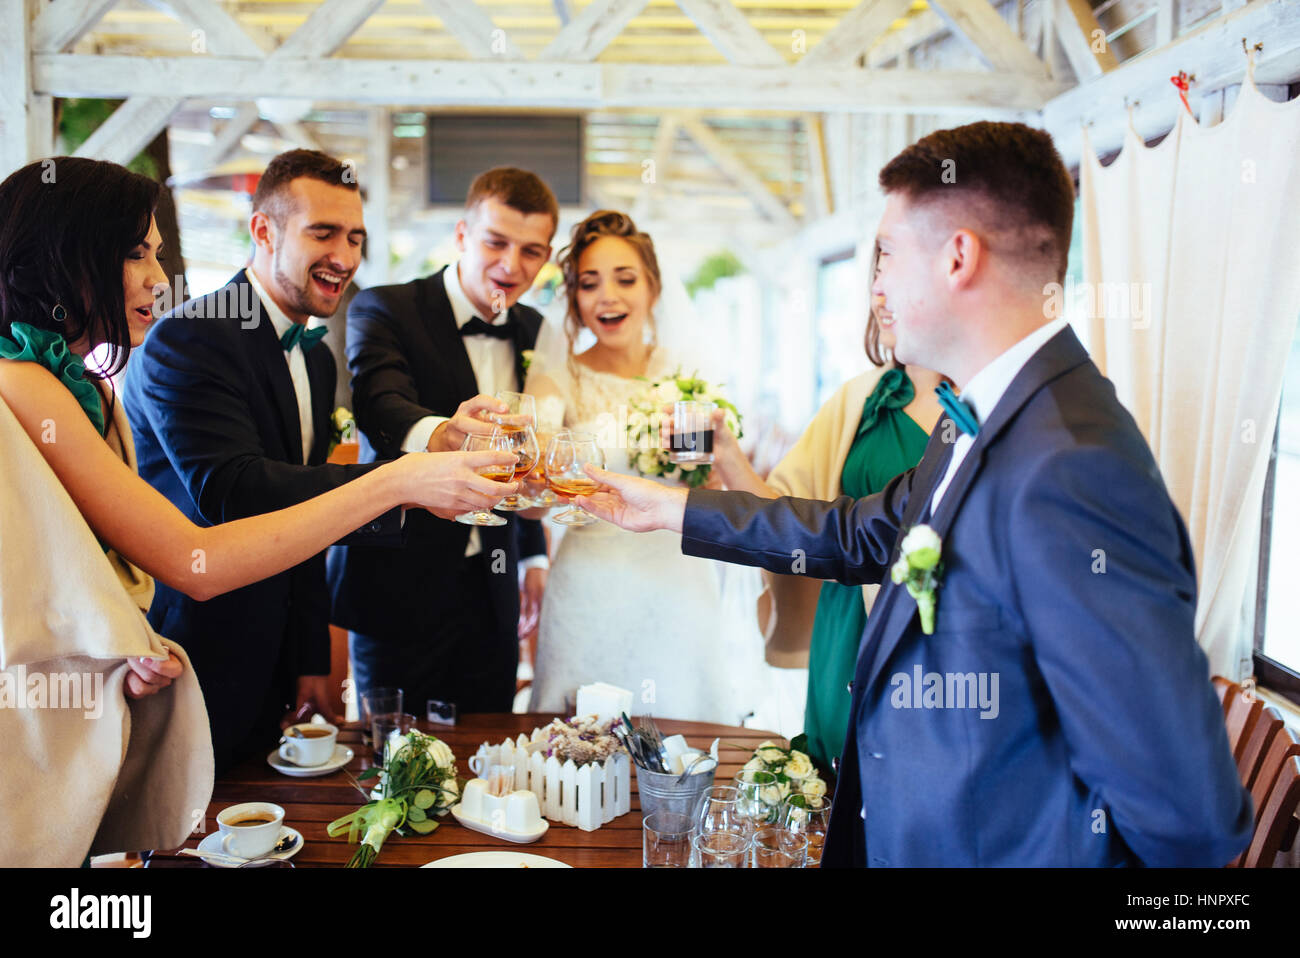 brides wedding day with friends in a cafe - Stock Image